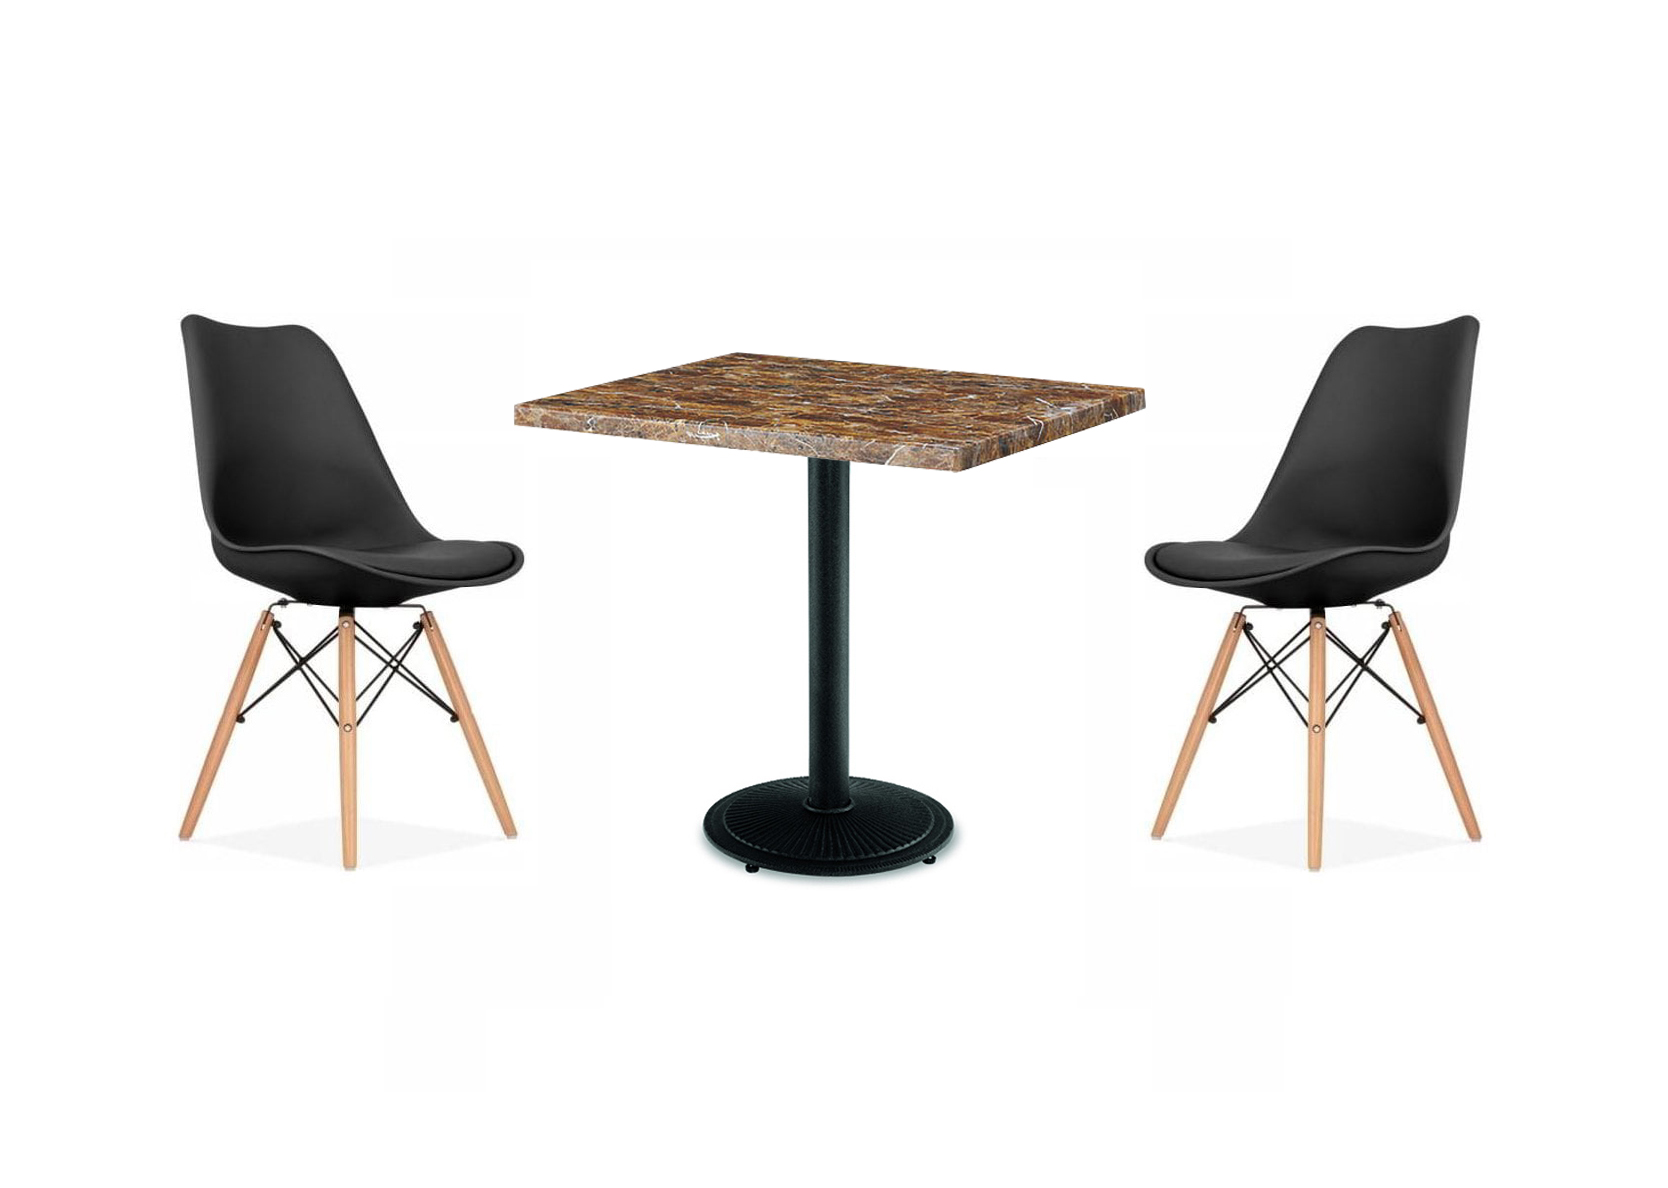 Mufton Gold Round Marble Table Poni Black Rounded Leg With 2 Softoon Dining Chair Black Modern Office Furnitures